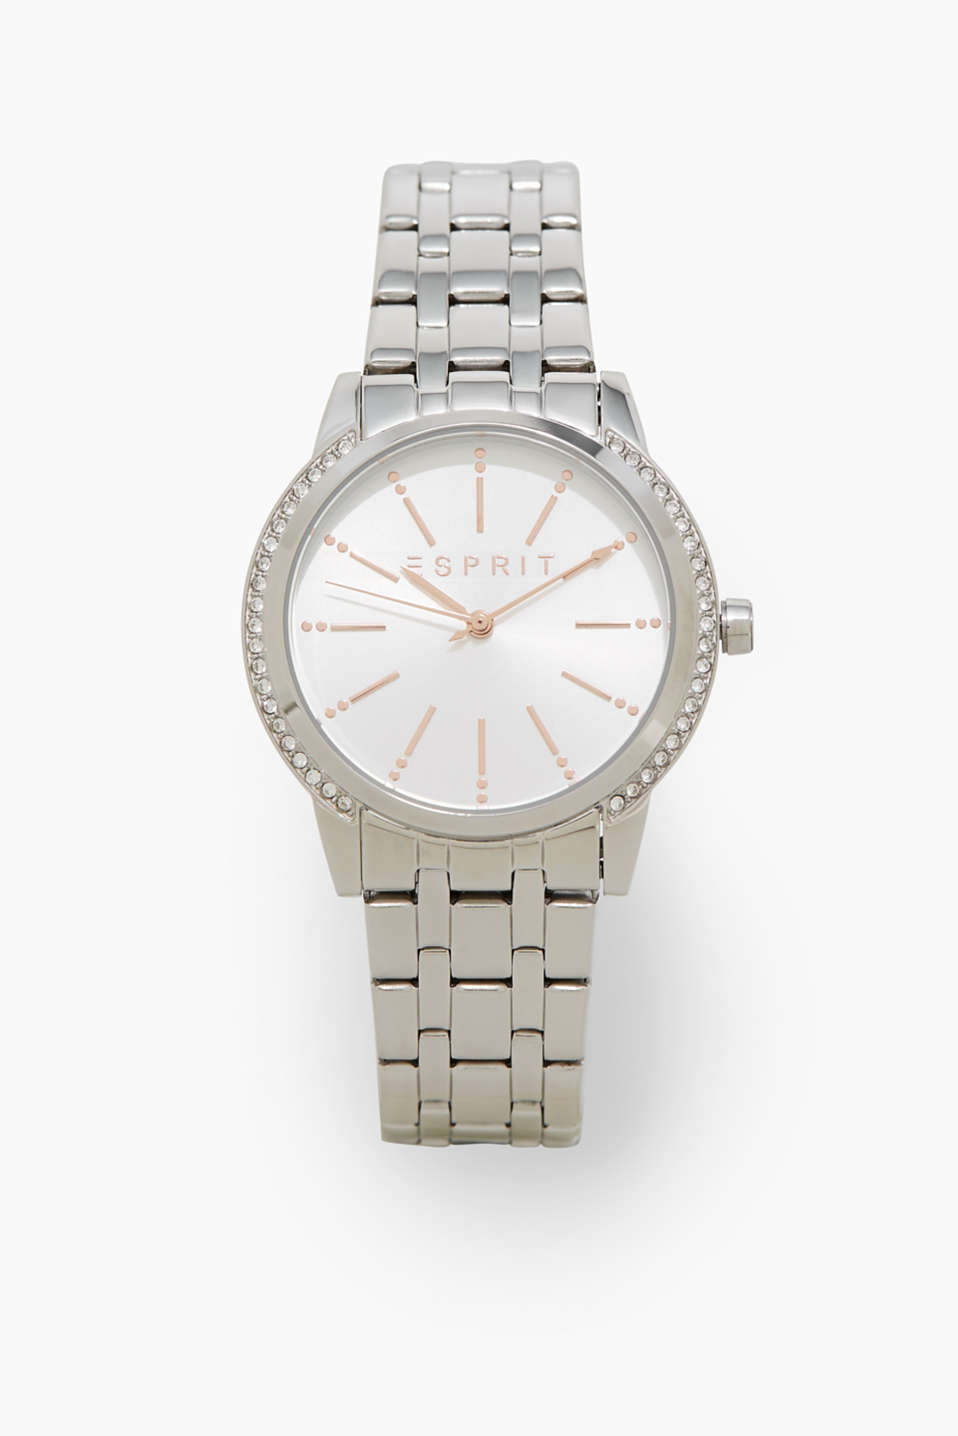 The timeless silver tone and the sparkling zirconia trims in the bezel make this watch an exciting accessory.